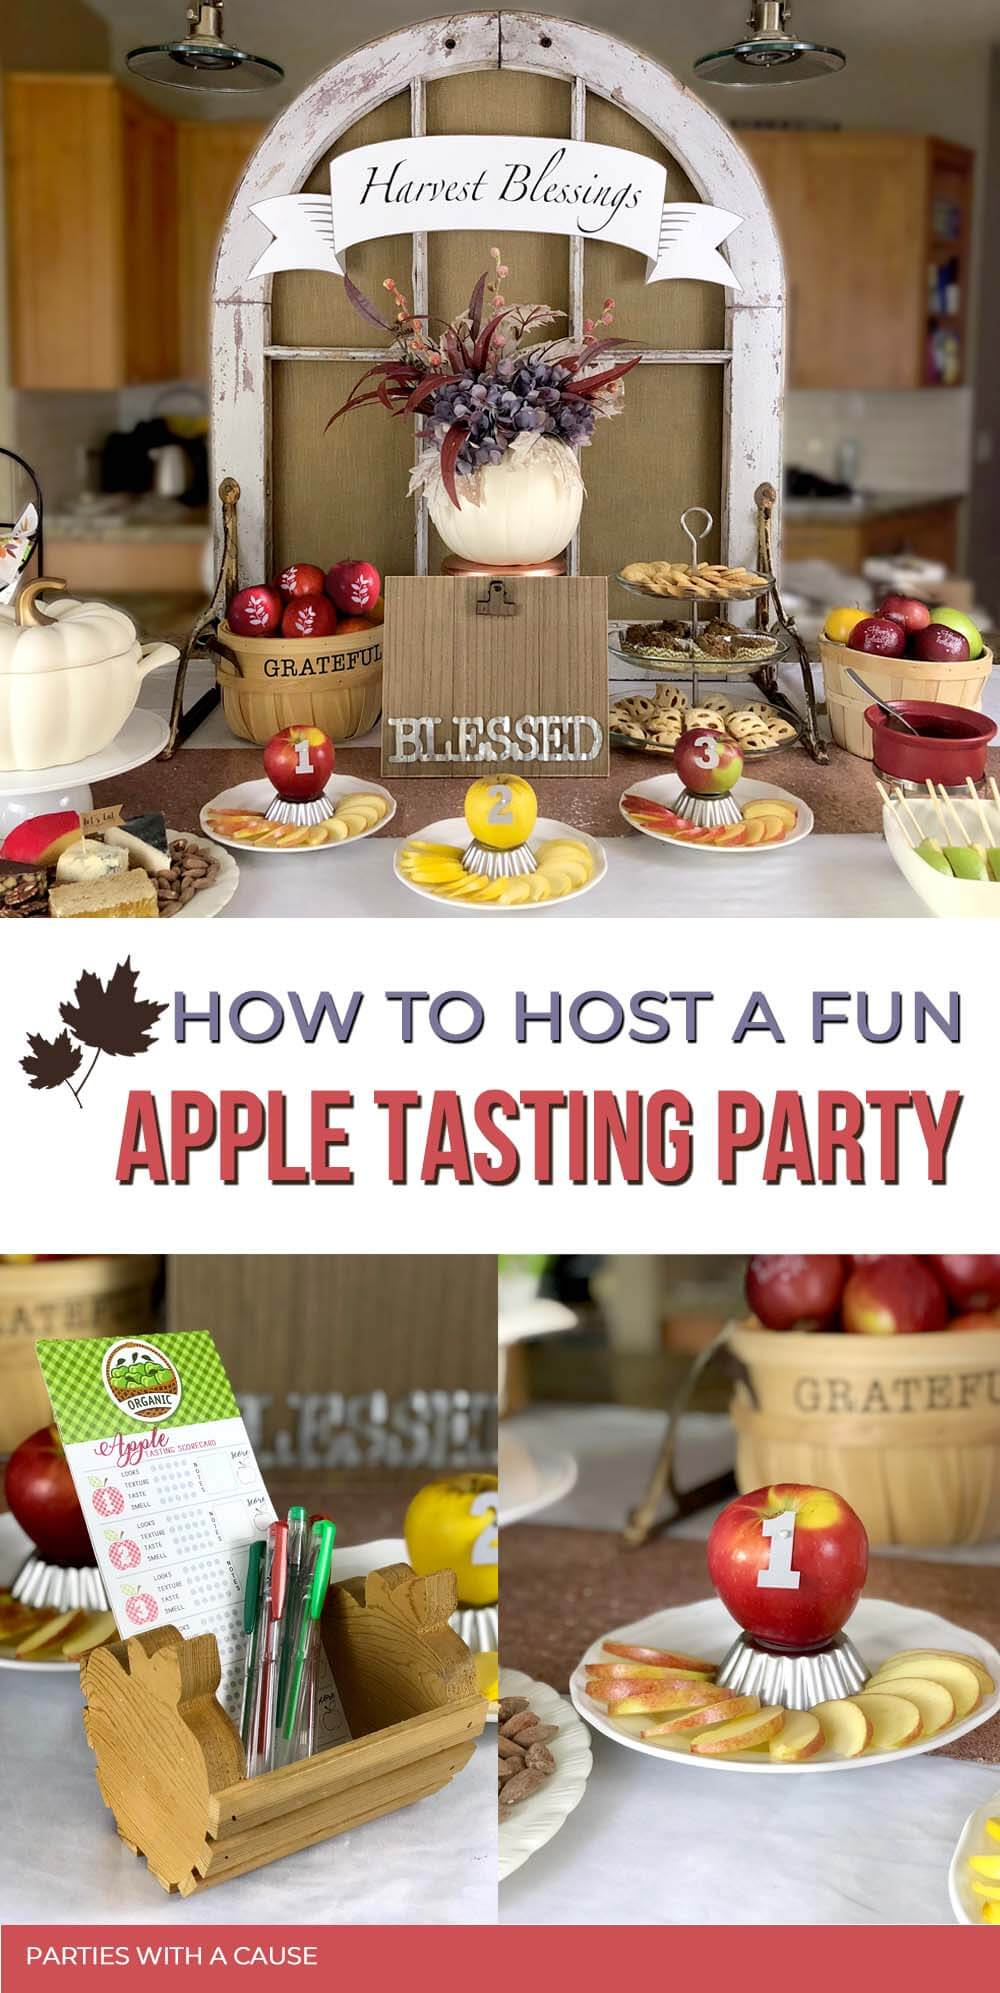 How to host a fun apple tasting party by Salt Lake Party Stylist